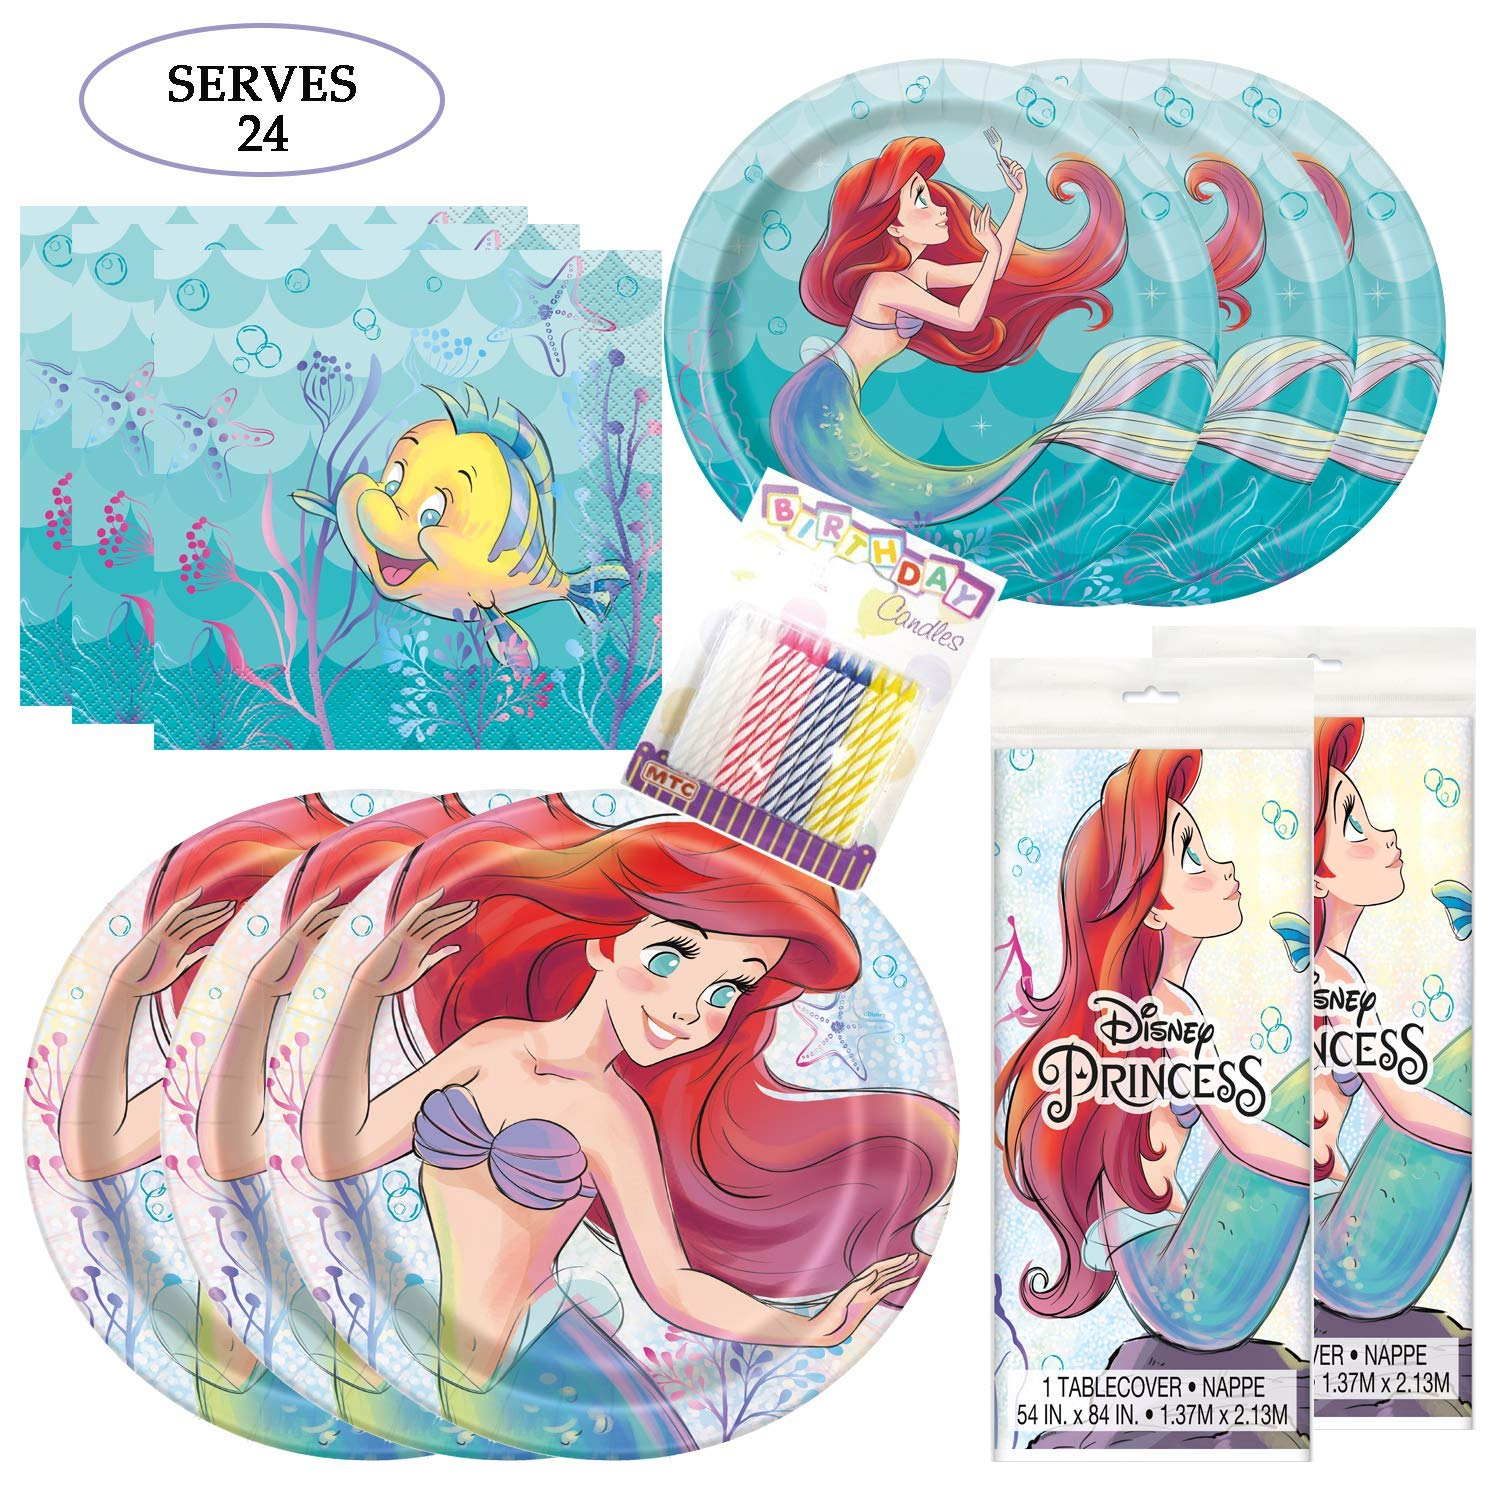 Little Mermaid Themed Party Pack - Includes 24 9'' and 24 7'' Paper Plates, 48 Luncheon Napkins, 2 Matching Table Cloth, Plus 24 Birthday Candles - Serves 24